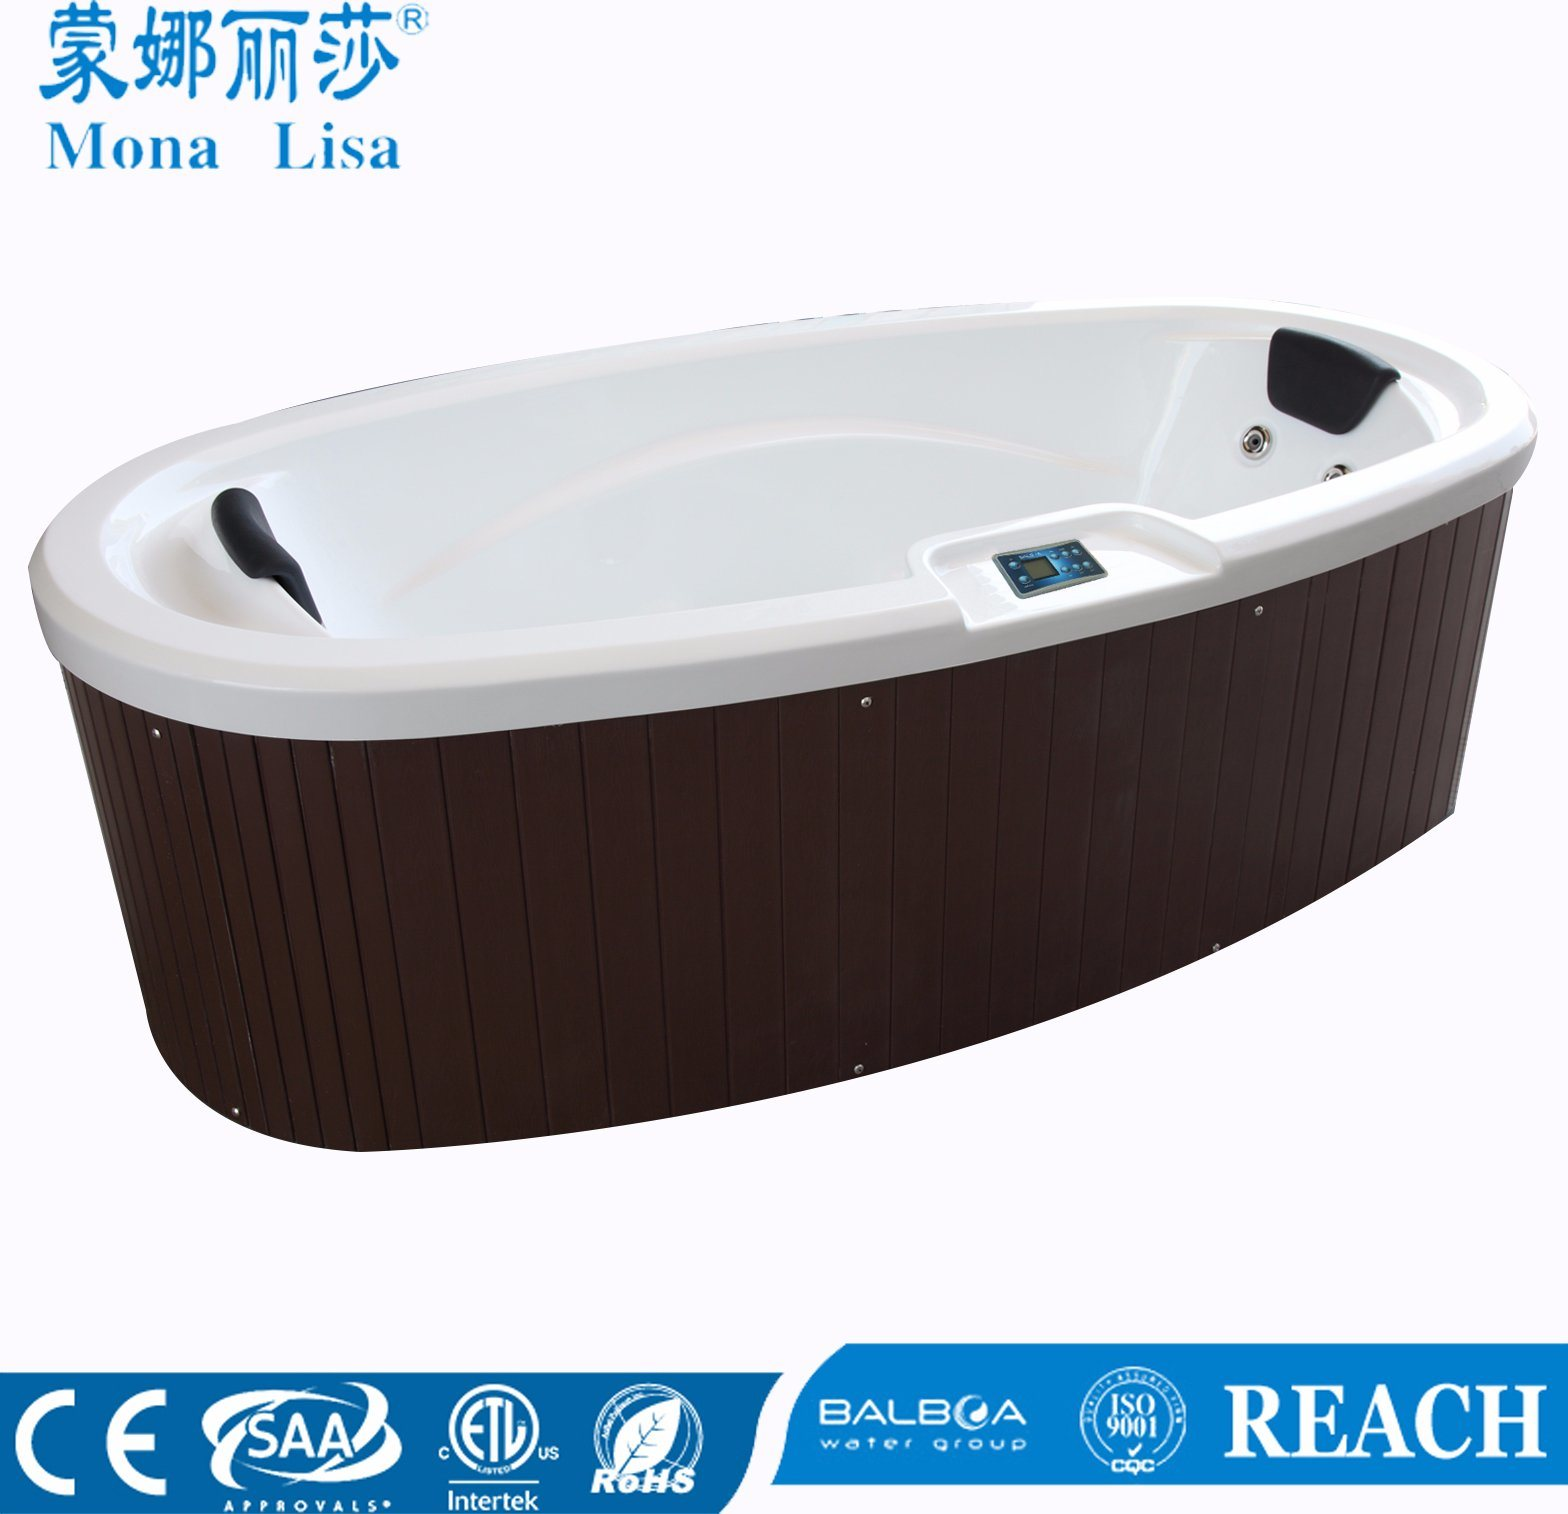 urevoocom best bathroom hot jacuzzi spa info bath transparent tubs tub stiprut bathtub person awesome acrylic whirlpool